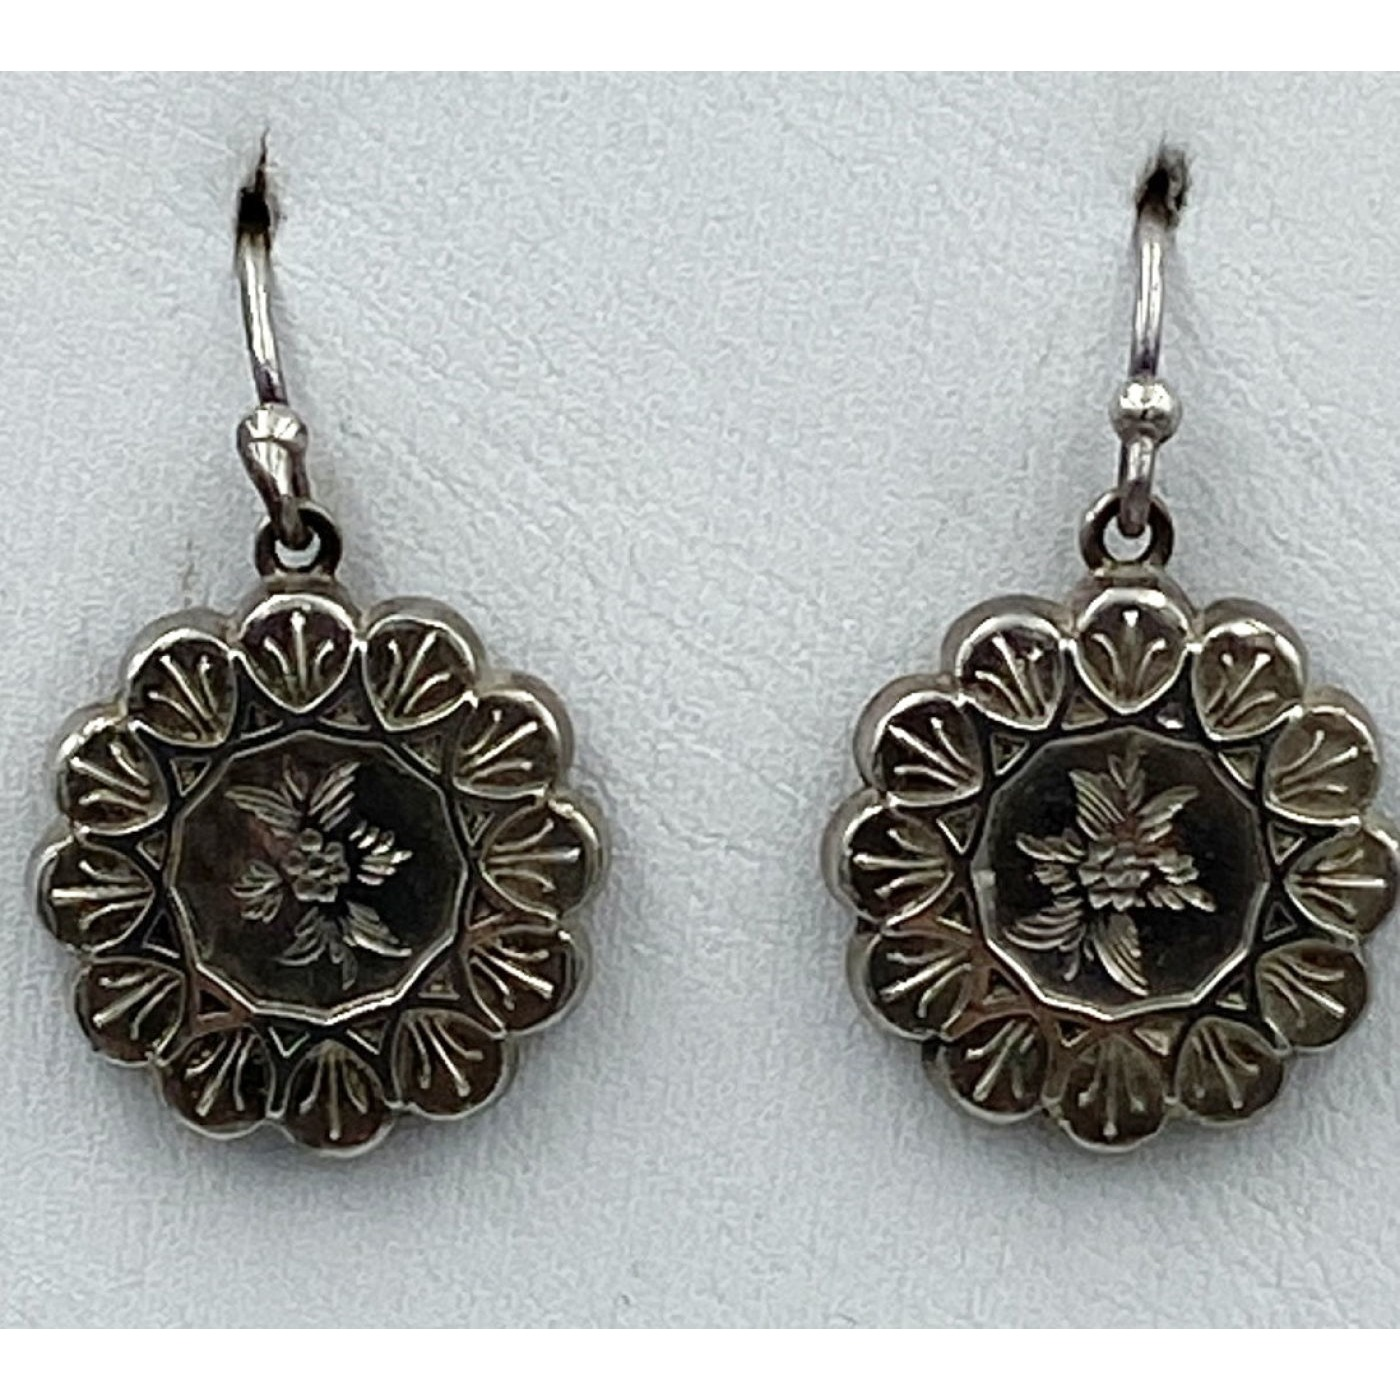 Victorian Flower Medallion Antique English Earrings